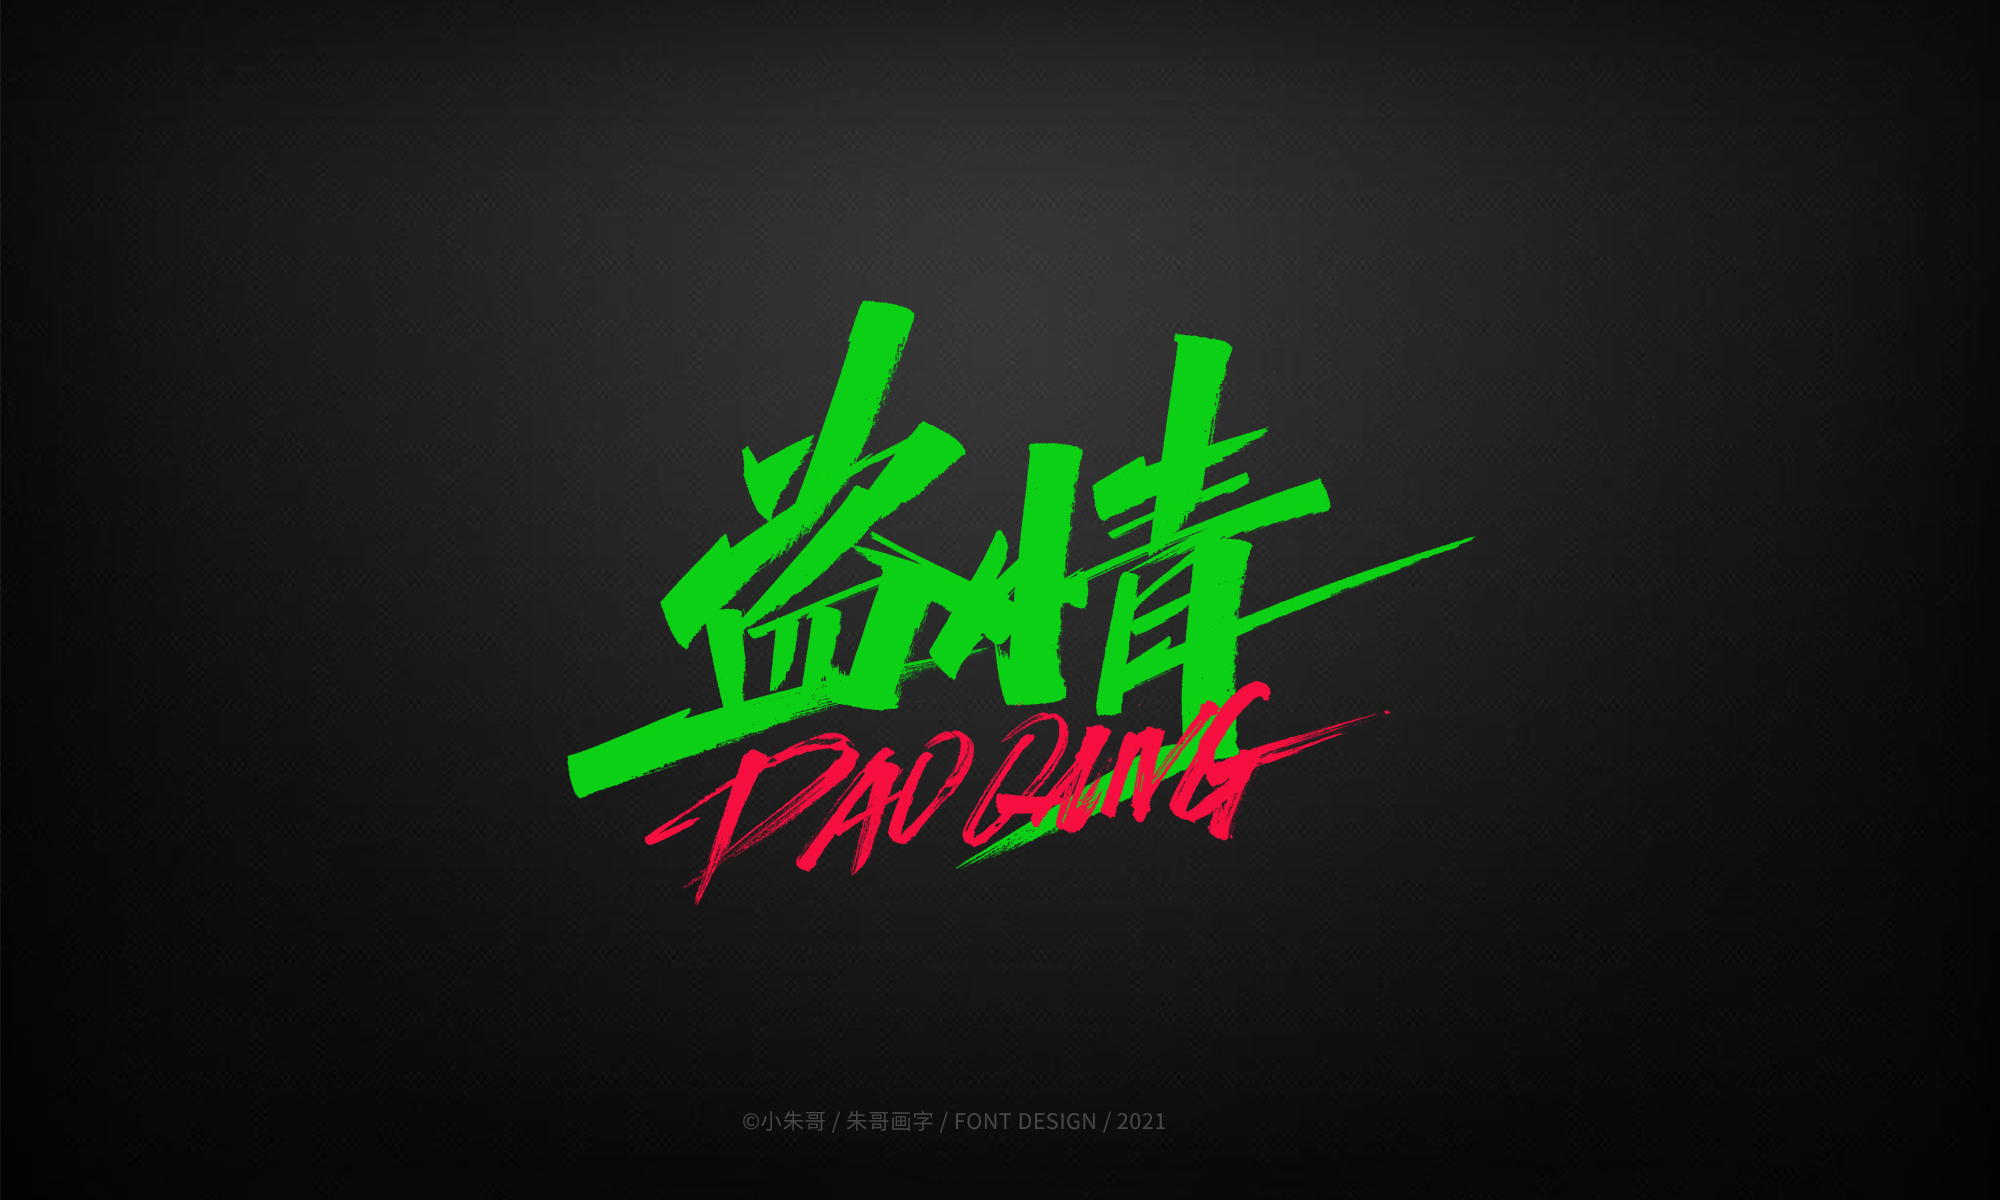 21P Collection of the latest Chinese font design schemes in 2021 #.74